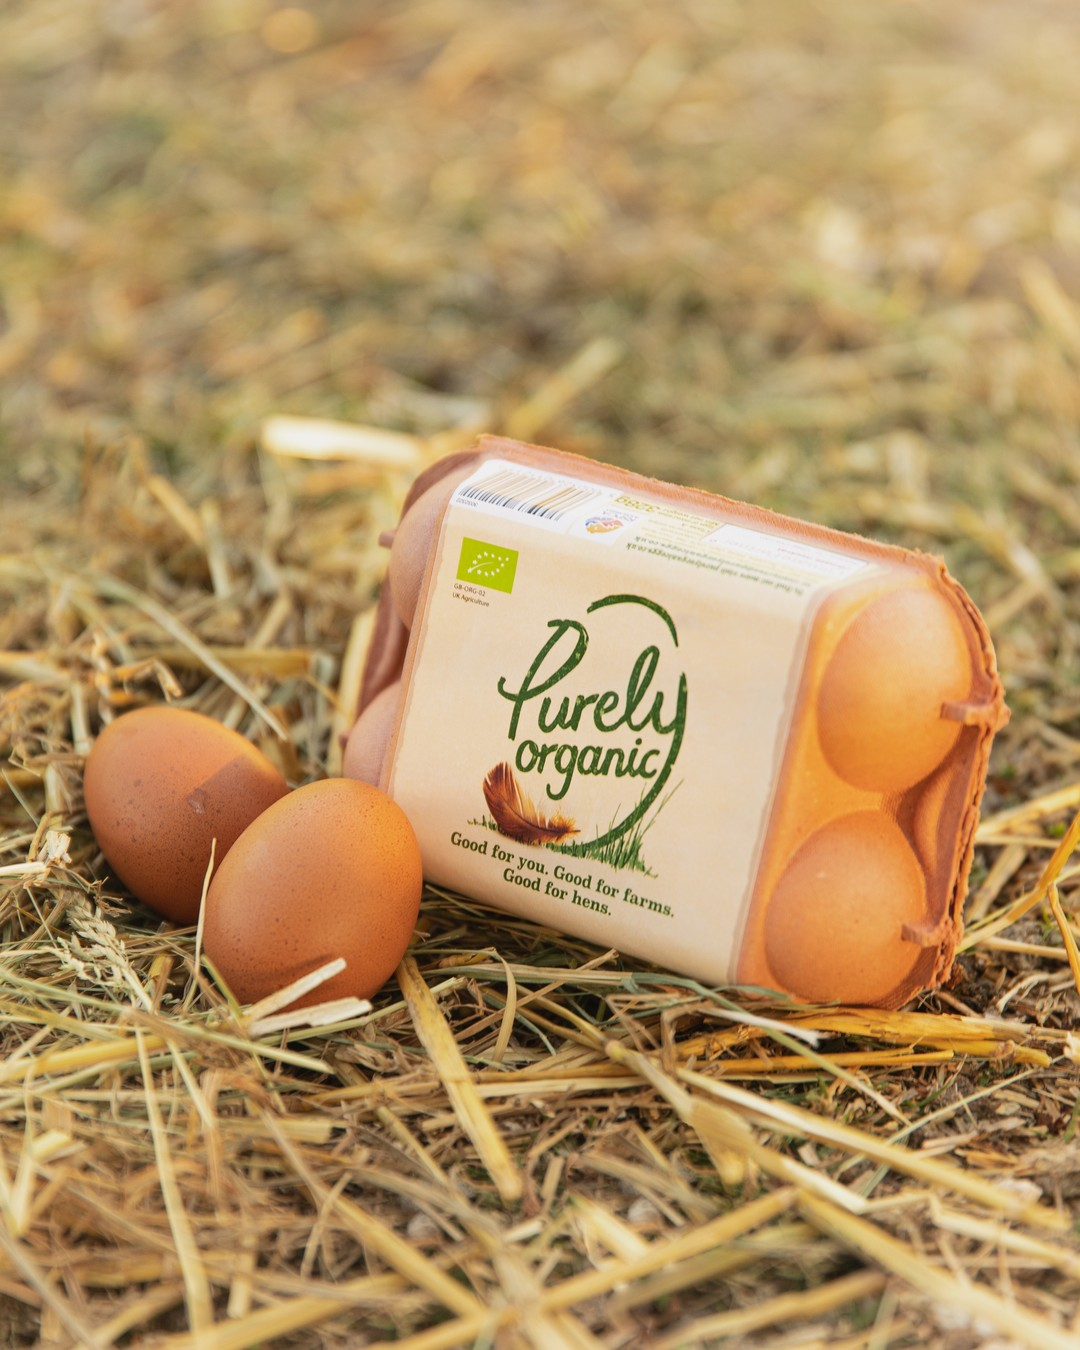 Good for you, Good for farms, Good for hens. Keeping things simple here at Purely Organic.